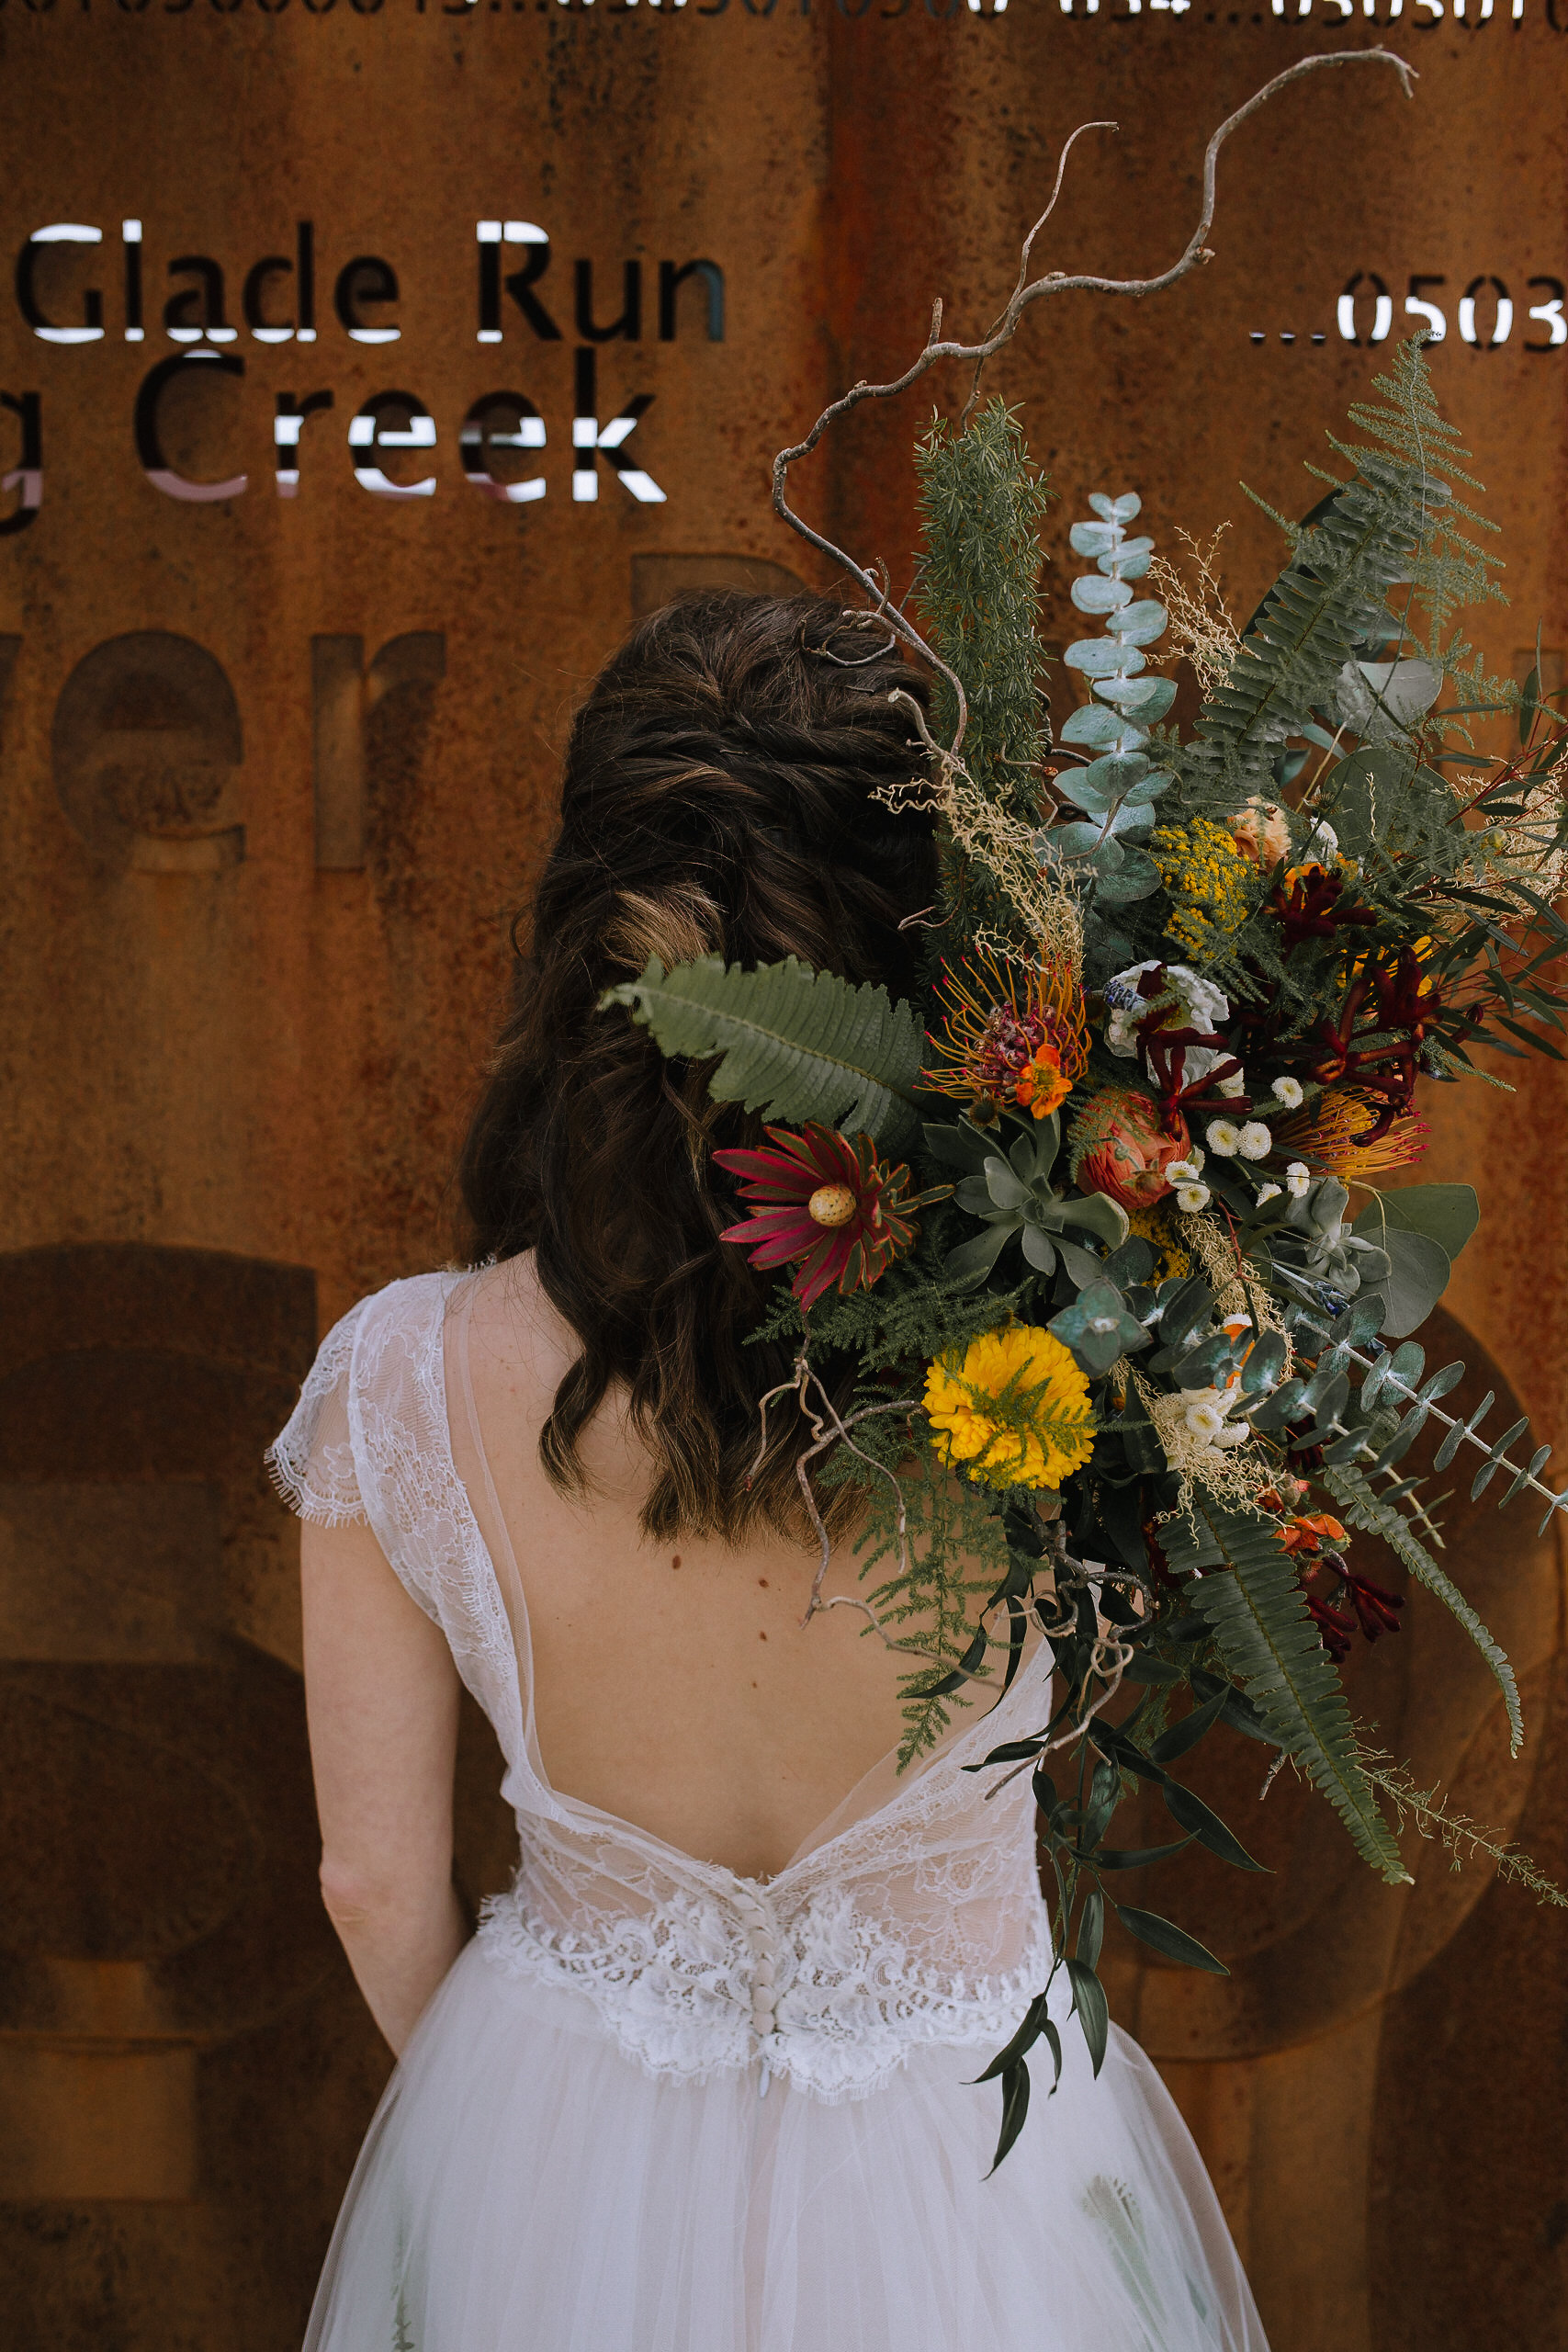 Bohemian wedding at Chatham University, Eden Hall Farm designed by Exhale Events. Bride's look from Blanc de Blanc Bridal, Melissa Gown by Divine Atelier.Bridal bouquet from Community Flower Shop. Hair & makeup by JL Makeup Studio.